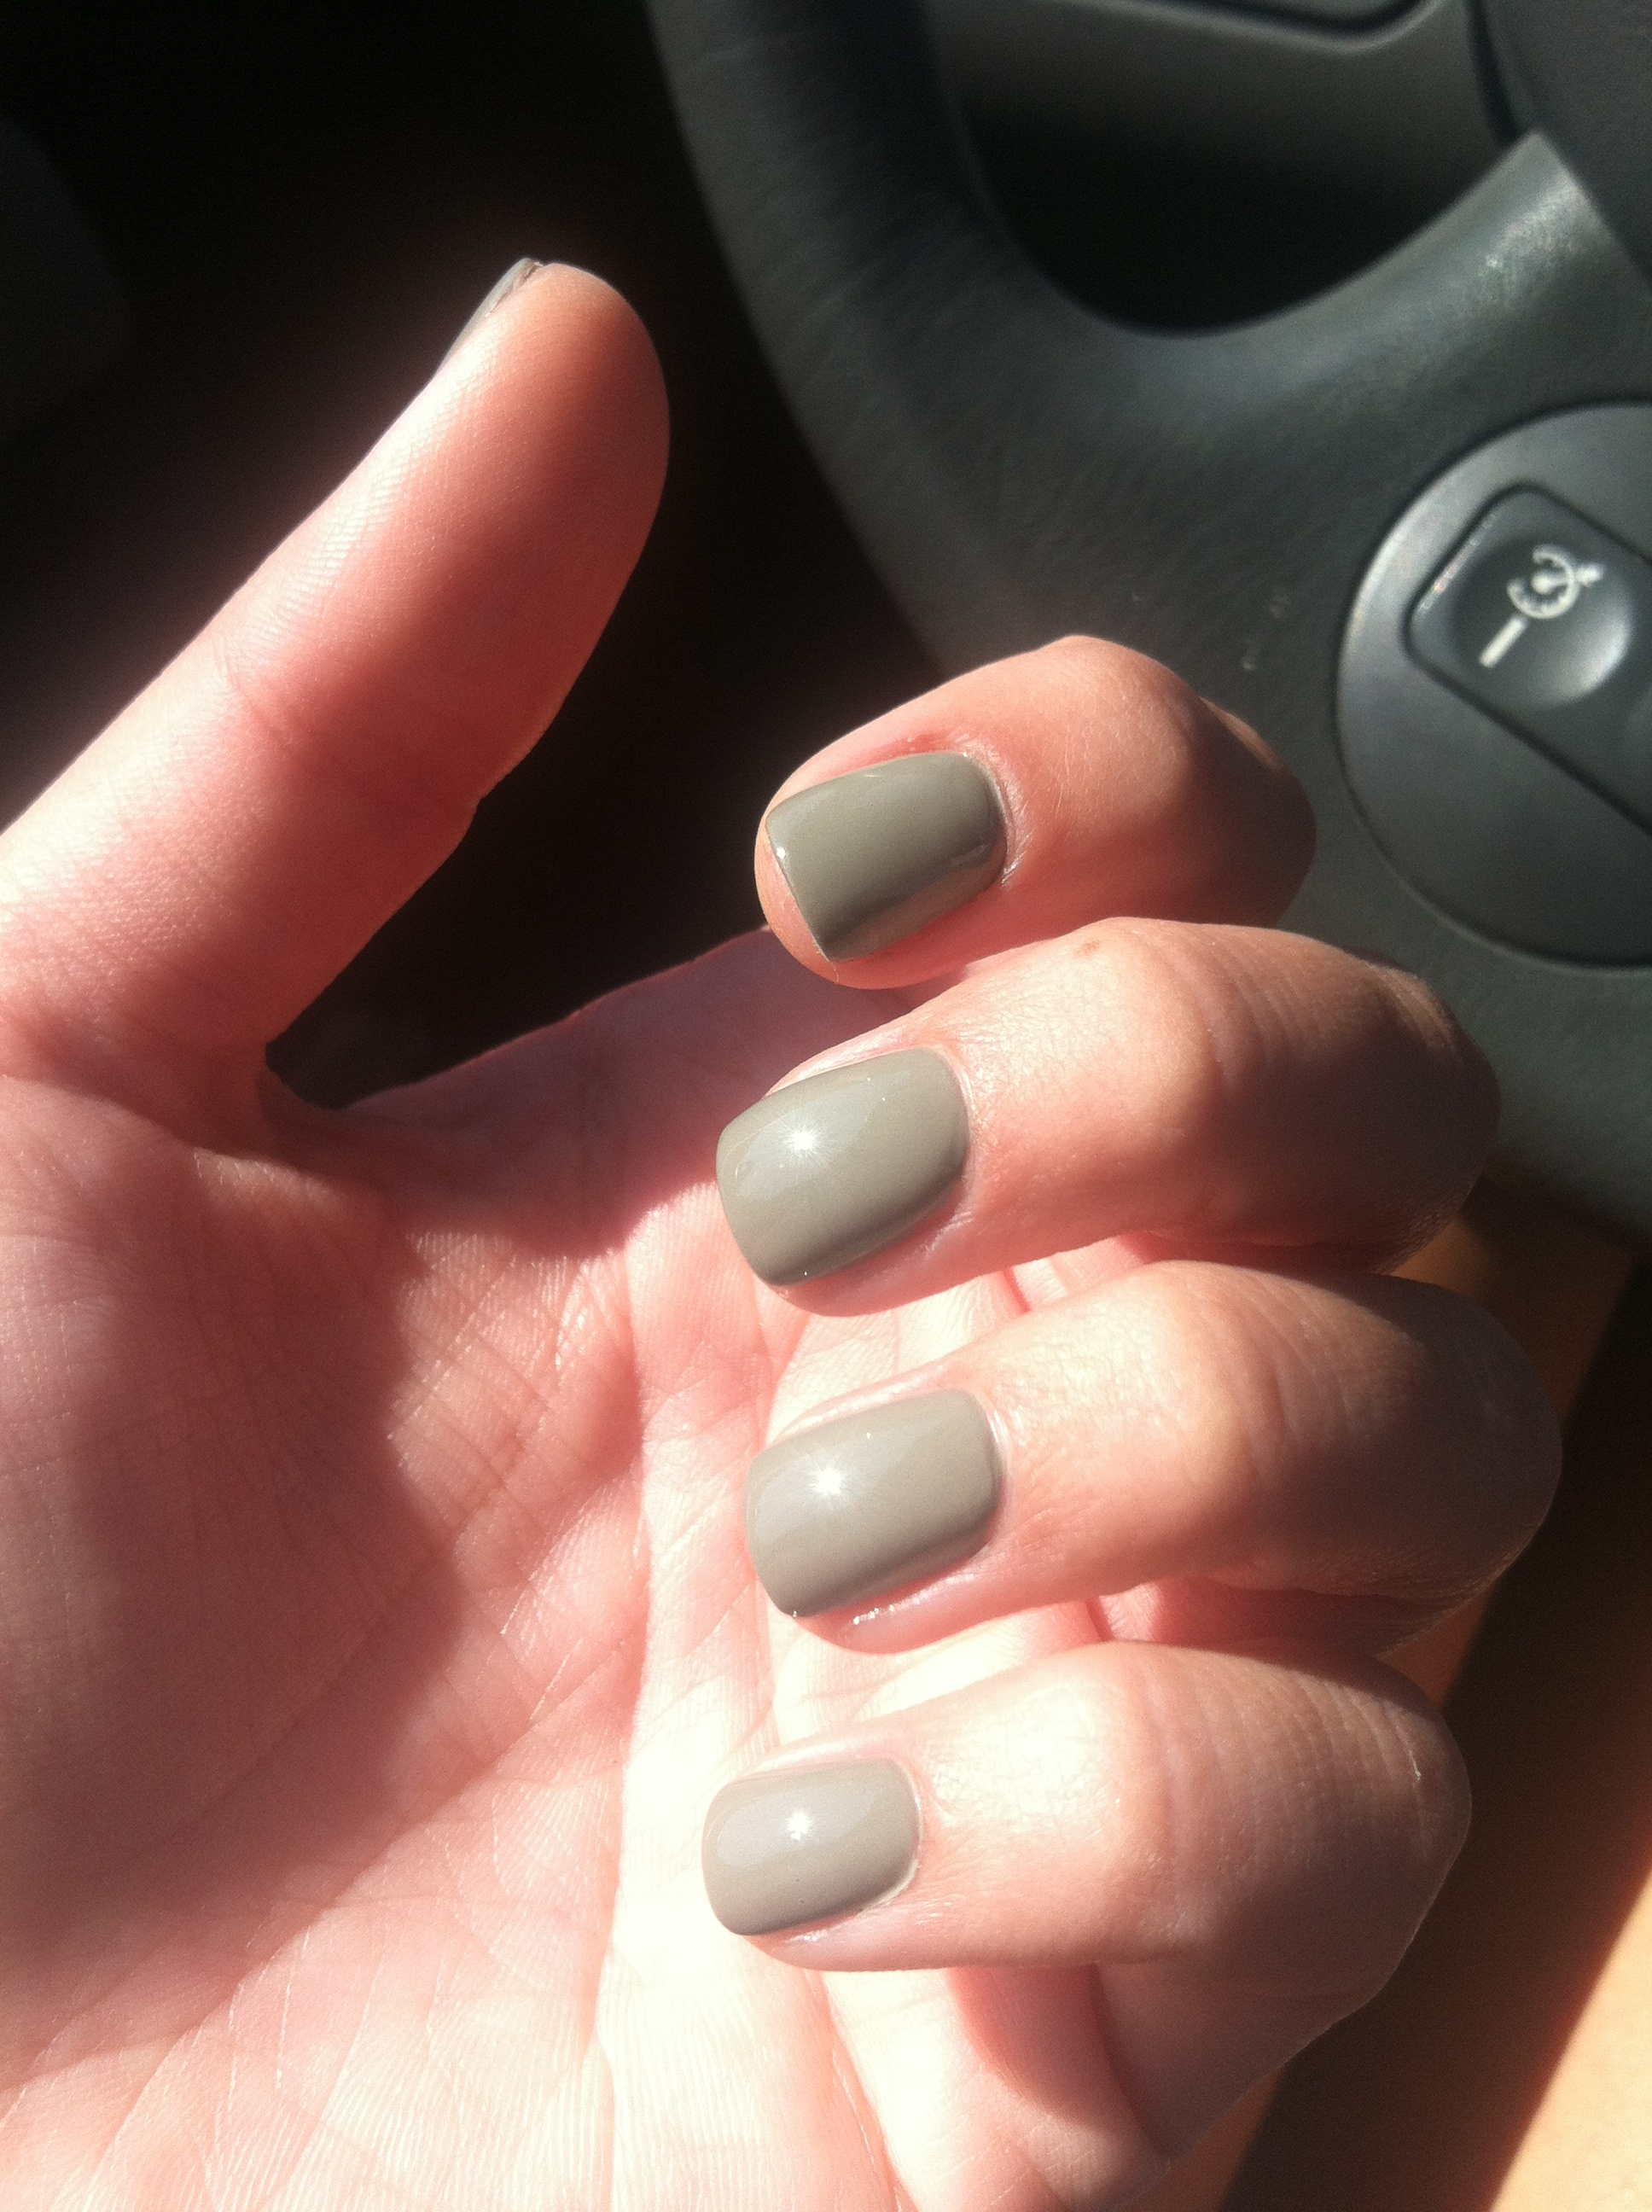 acrylic nails | Sweaters In The Stove